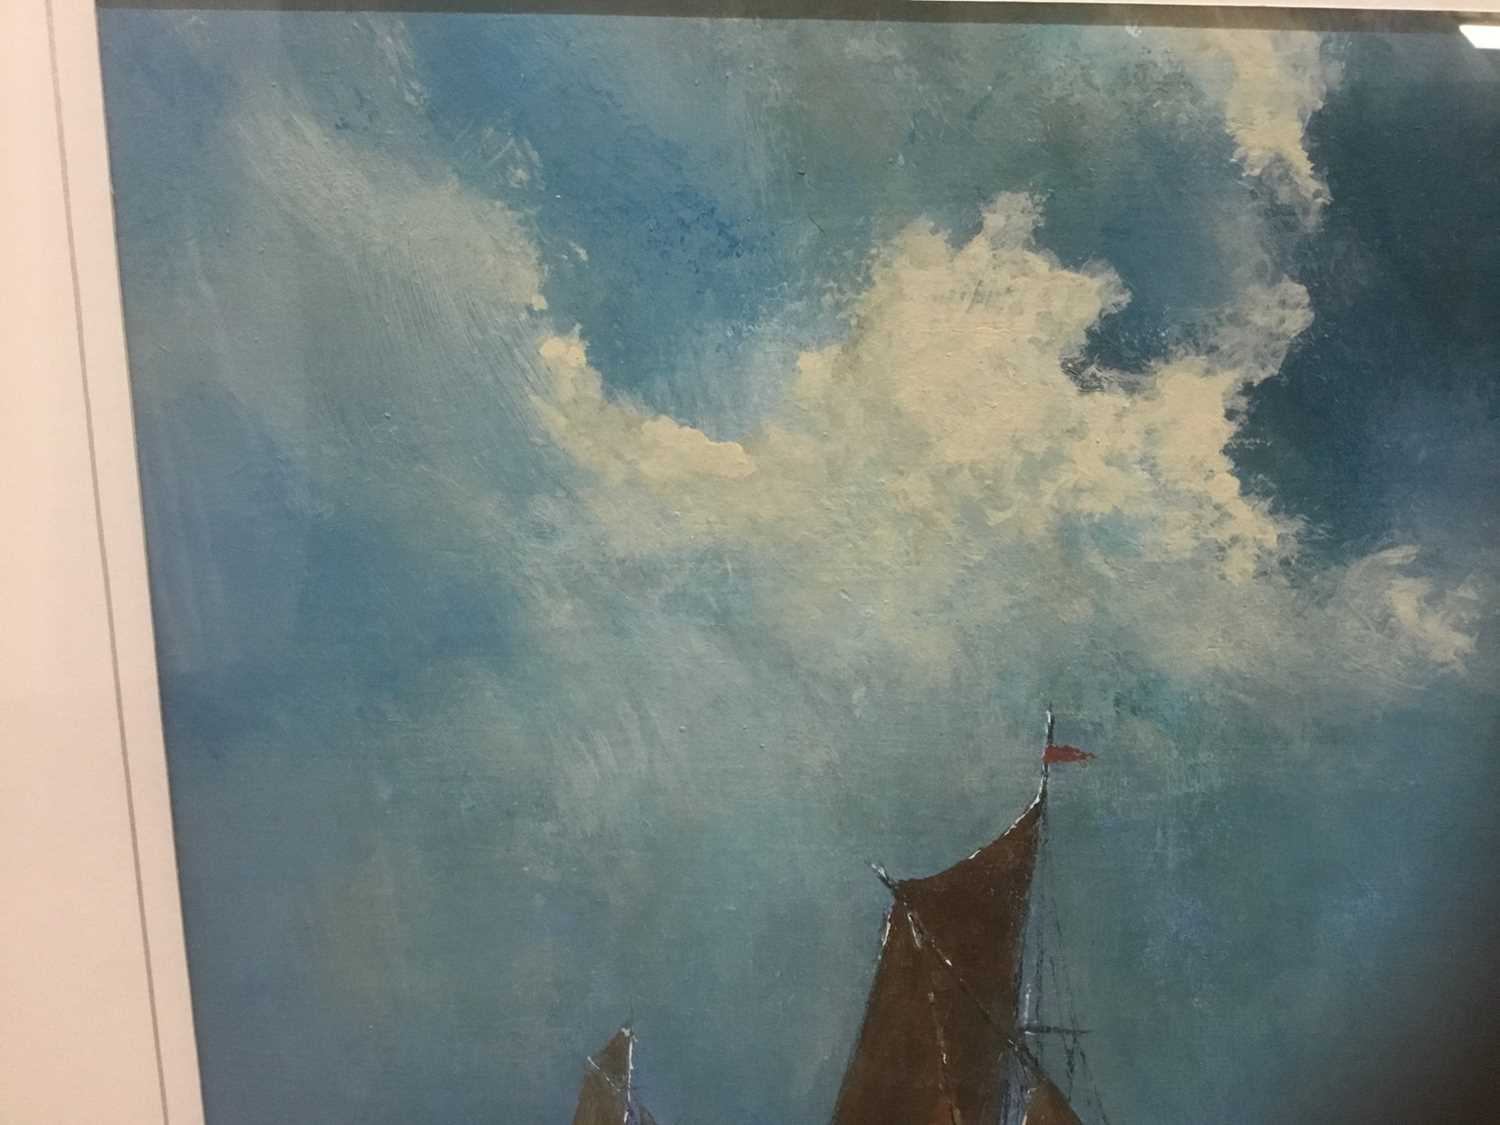 John Clarke, contemporary, oil on board - sailing barges, signed, 25cm x 36cm, in glazed frame - Image 5 of 7